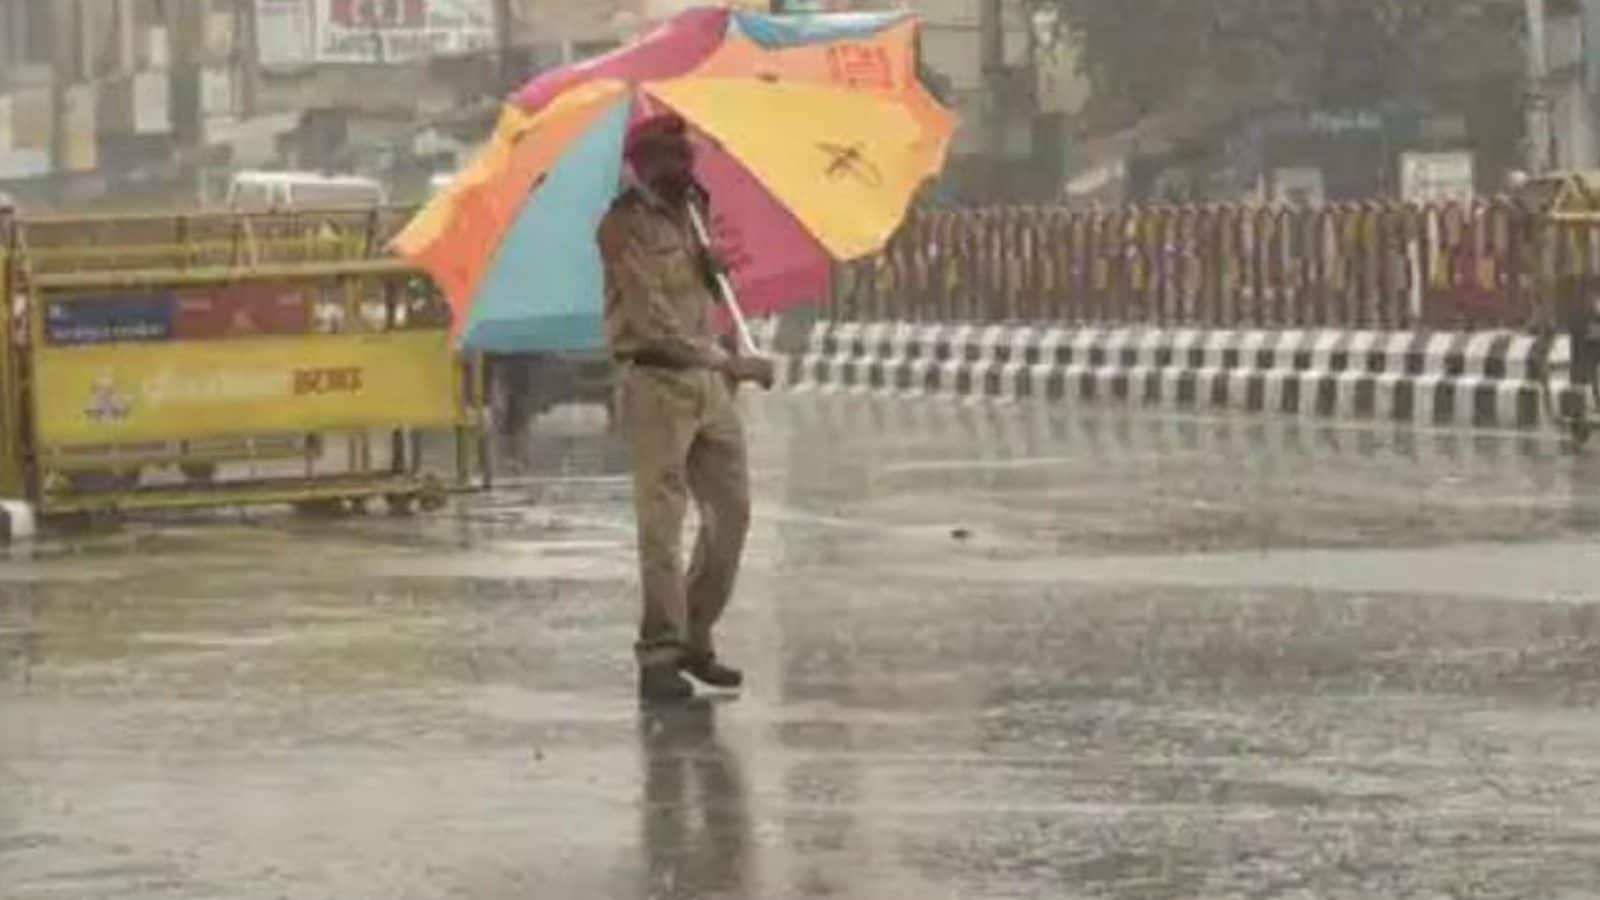 Death Toll in Uttar Pradesh from Rain-related Incidents Rises to 24 in Last 3 Days